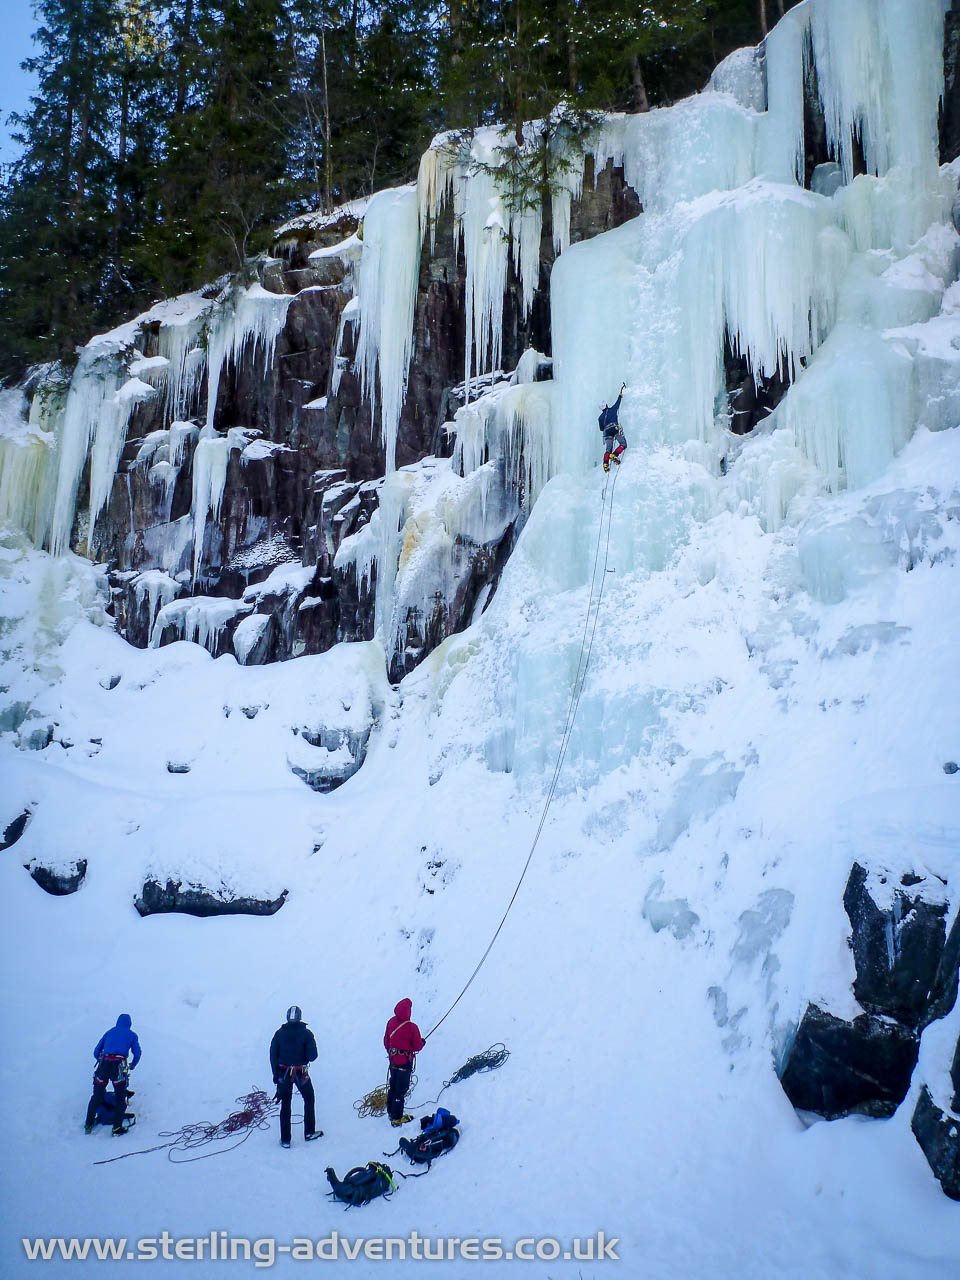 Rjukan Ice Climbing Meet, 2016